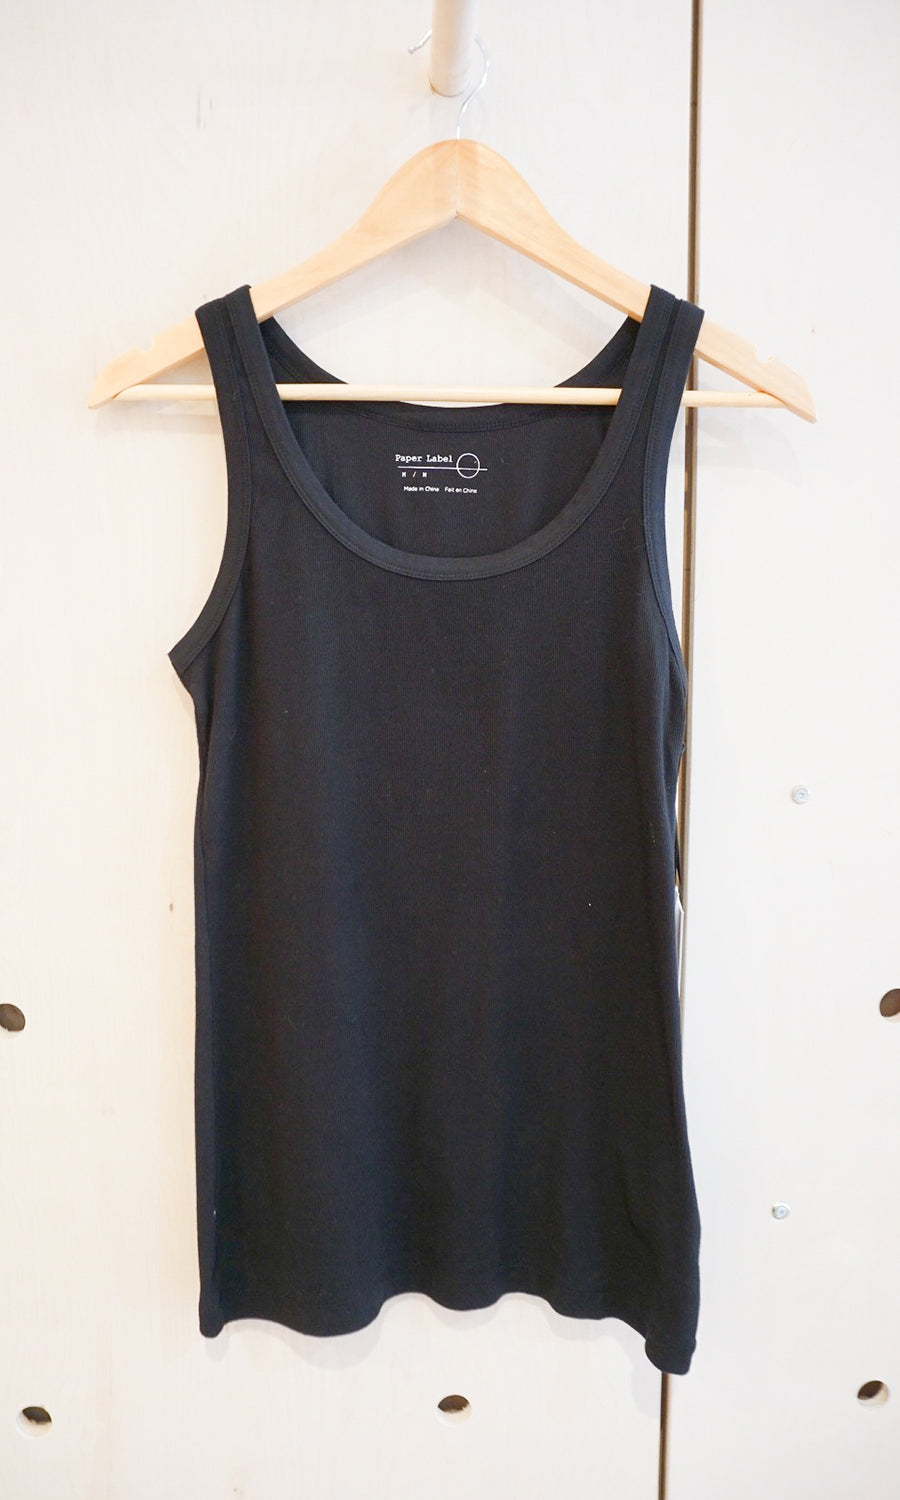 Paper Label Mara Tank Top